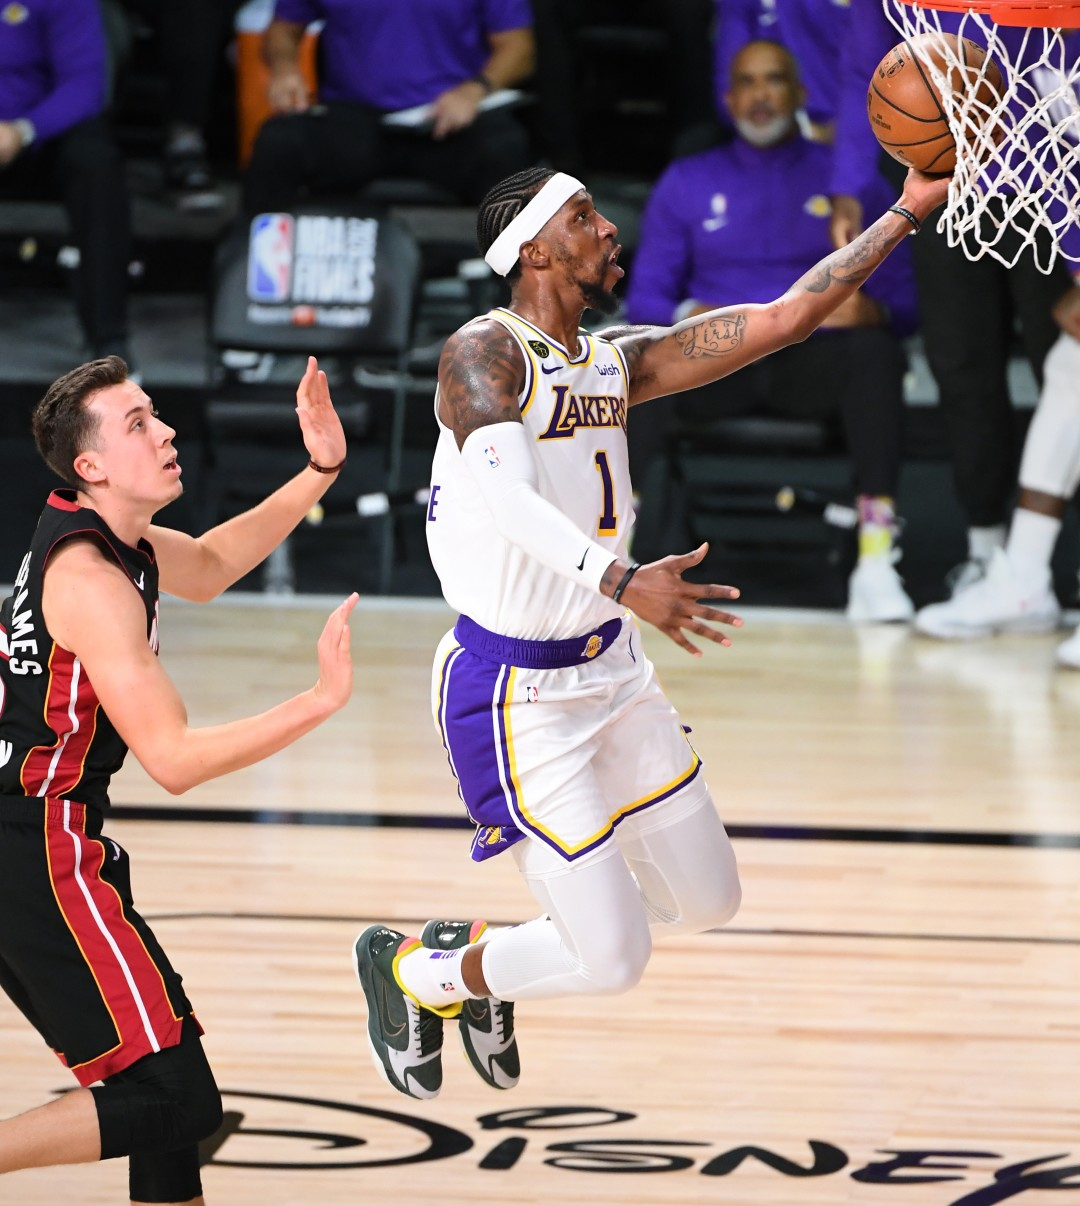 Lakers guard Kentavious Caldwell-Pope scores ahead of Miami Heat guard Duncan Robinson during the first quarter of Game 6 of the NBA Finals on Sunday.(Wally Skalij / Los Angeles Times)